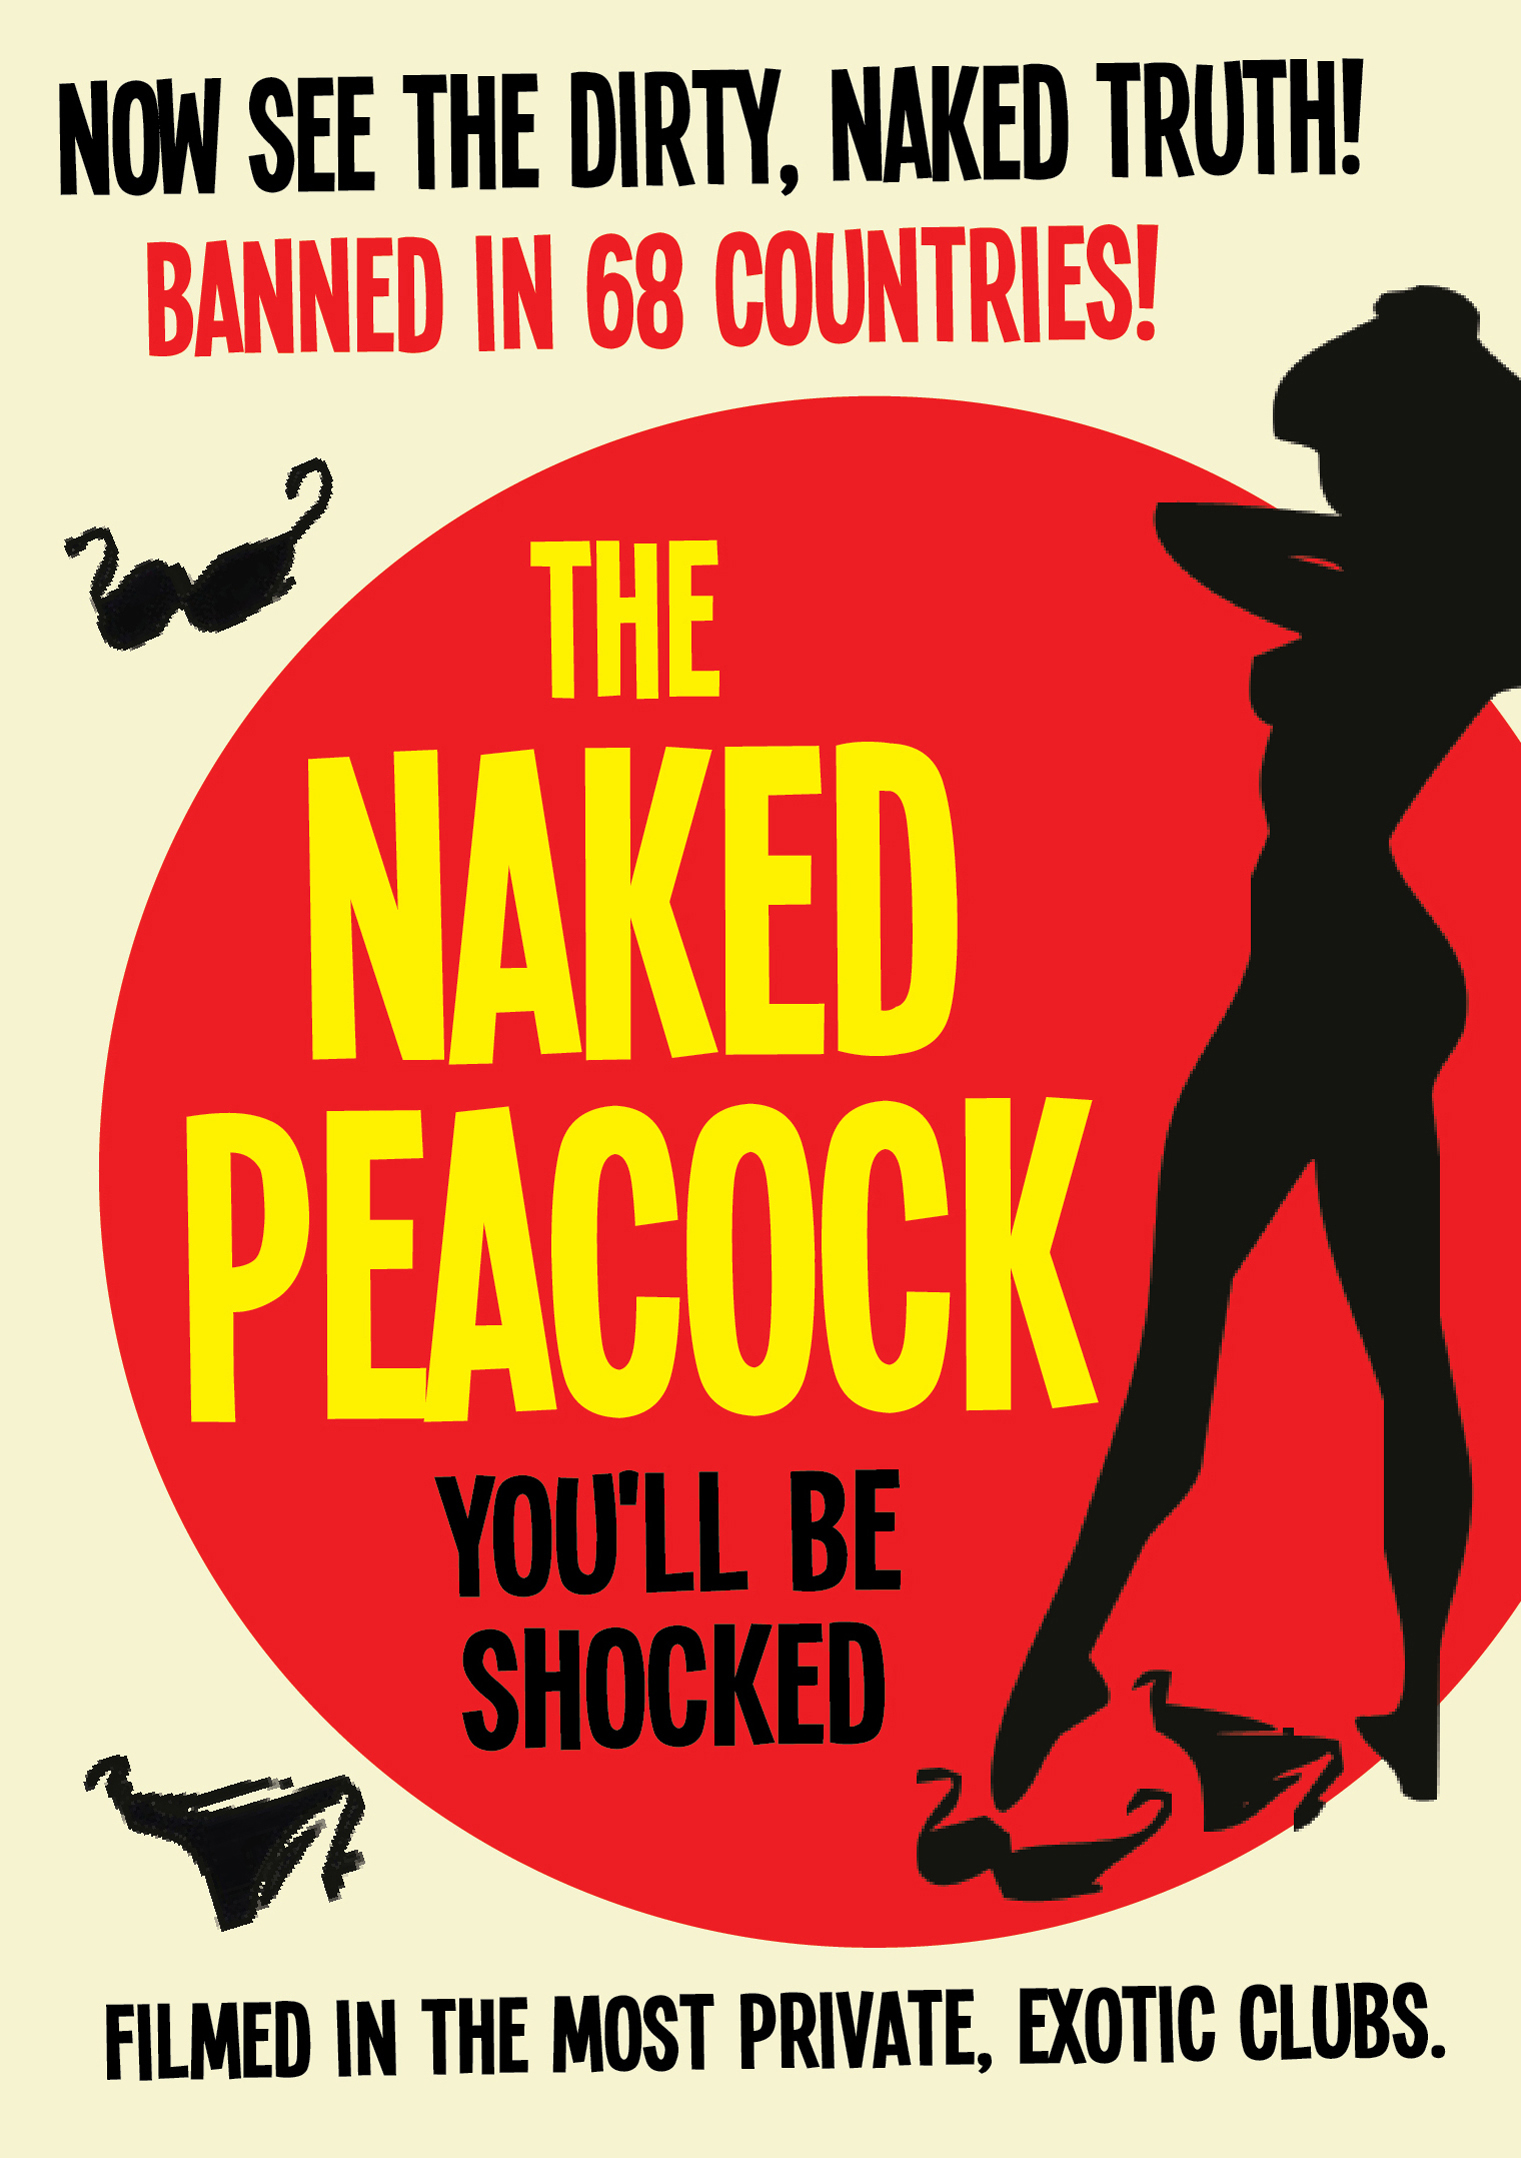 The Naked Peacock